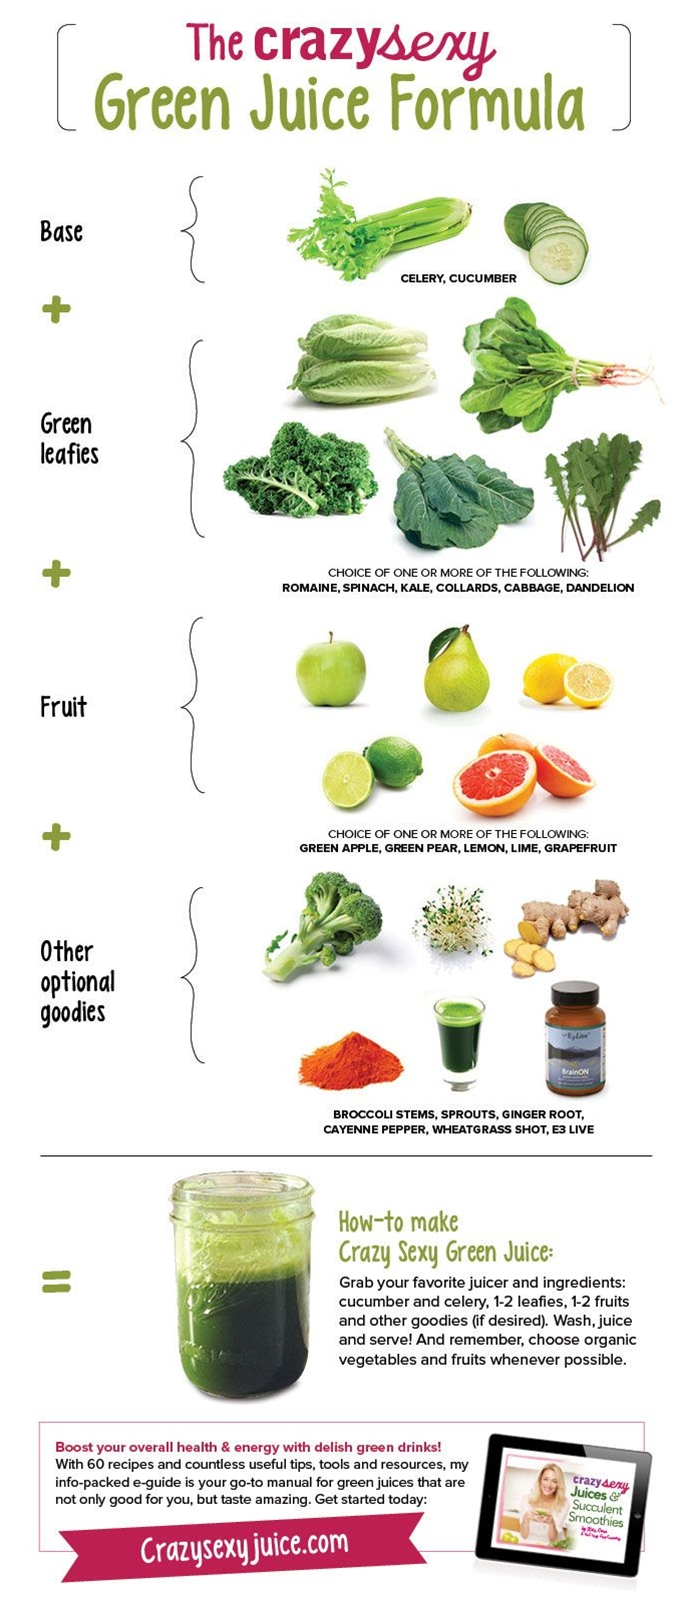 Kris Carr teaches you how to make her favorite green juice recipe, answers green juice FAQs and shares her green juice recipe infographic.